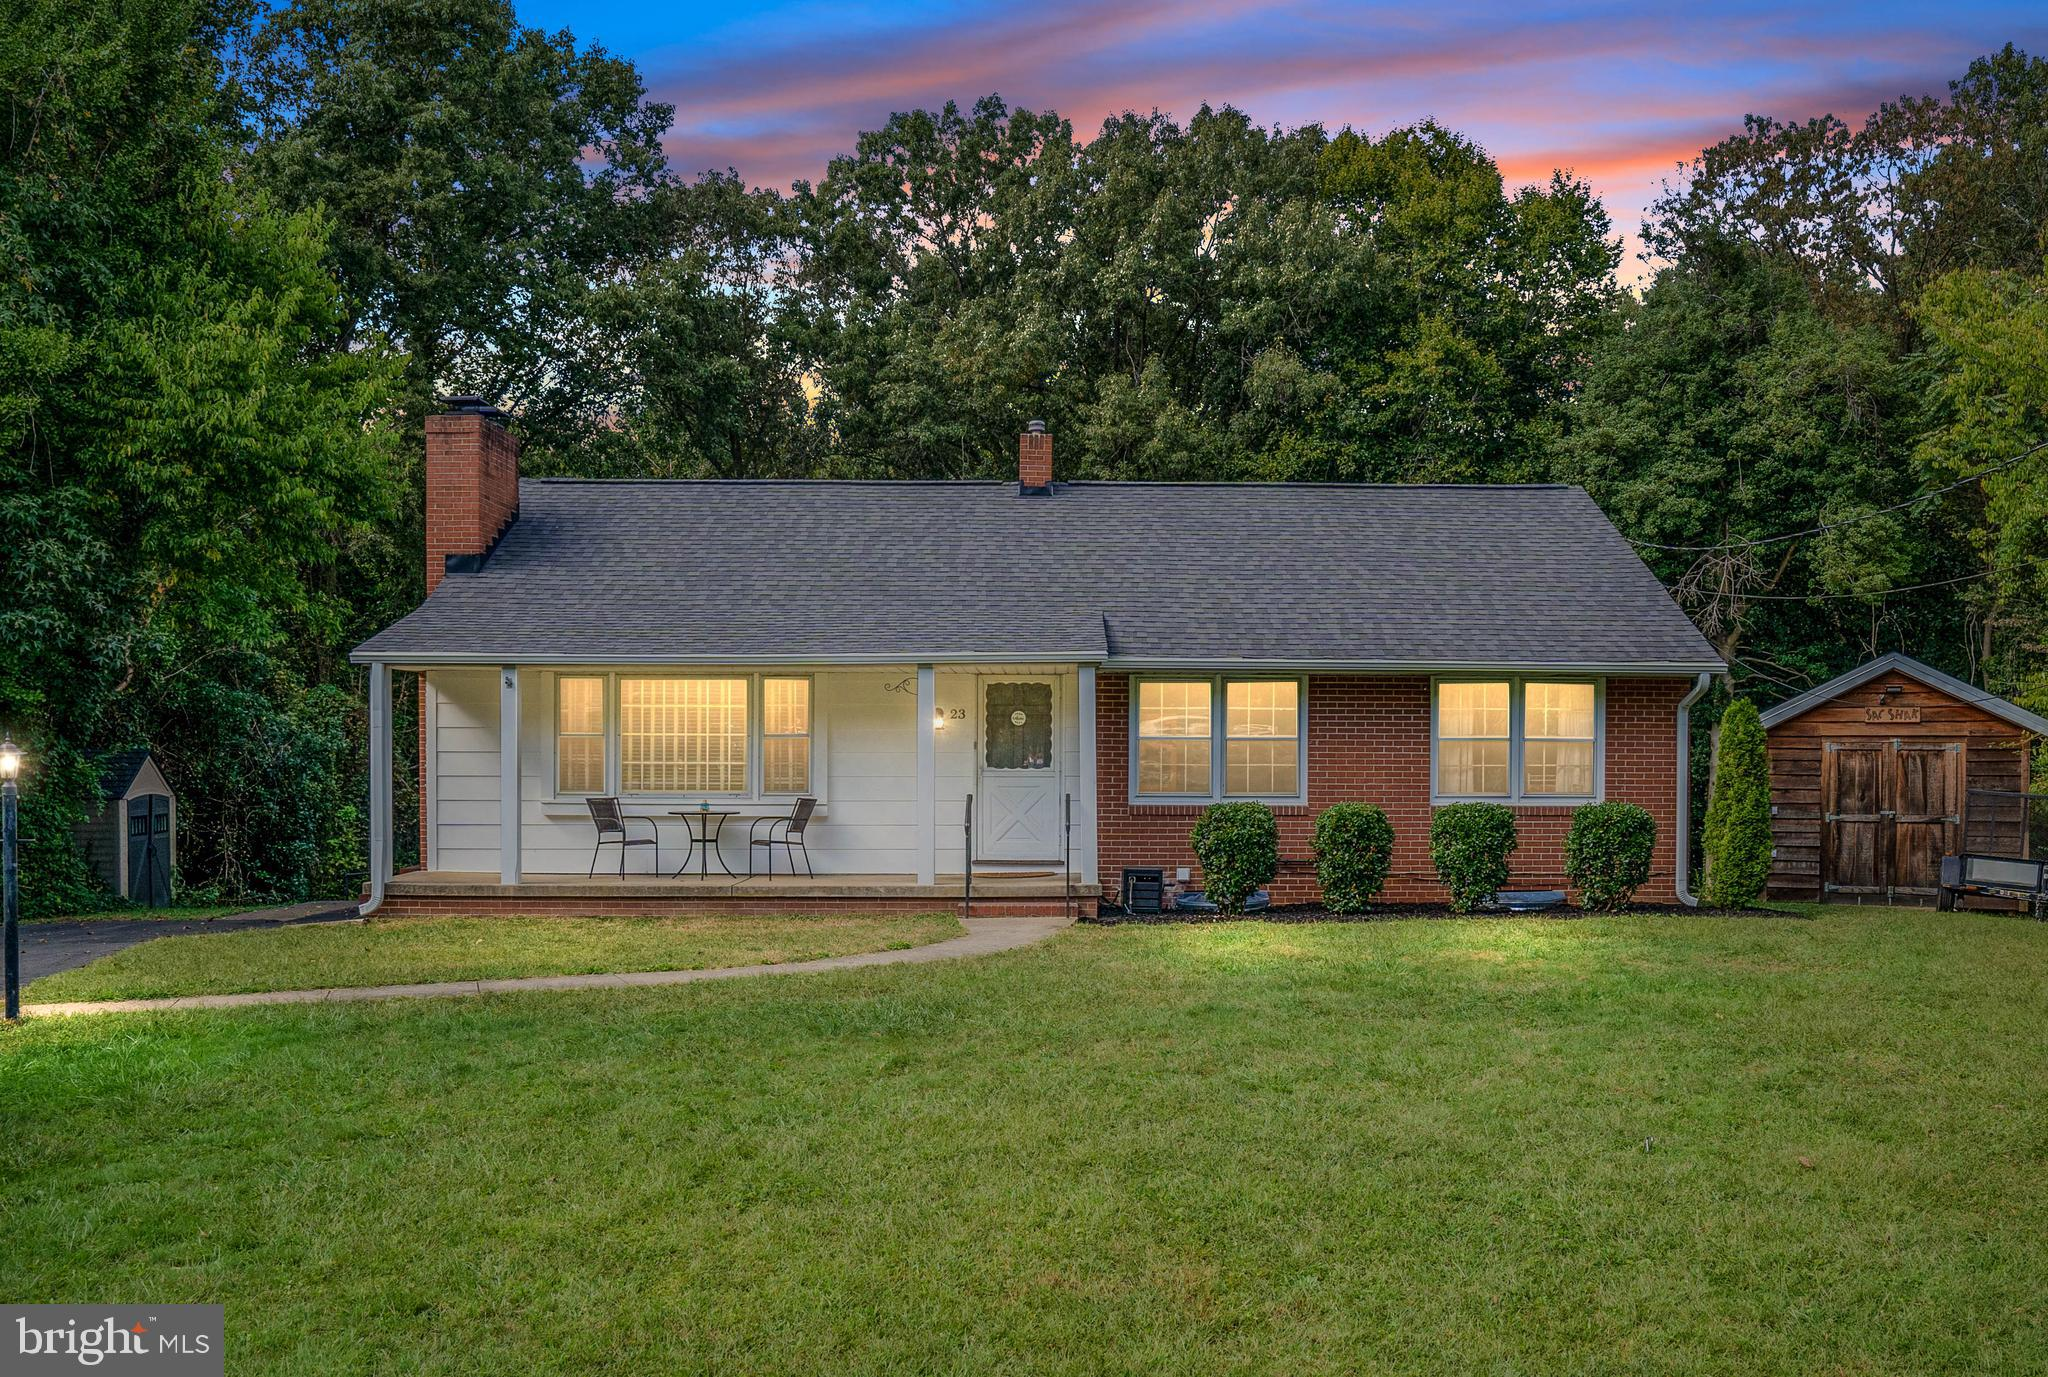 Are you dreaming of a picturesque home in a cul-de-sac, in one of the most desirable neighborhoods in South Stafford?  How about a home that blends the upgrades and renovations that you desire but still offers you the chance to make this classic brick beauty your own? Look no further b/c this is the one! This stunning brick rambler has been refreshed with a brand new roof, new HVAC, completely renovated primary bedroom and bathroom, granite counters, and other thoughtful renovations throughout. Perfectly placed on an absolutely gorgeous .82 acre lot in Ferry Farms. The huge front yard is ready for a fall evening porch sittin' & sippin' hot apple cider or watching the neighborhood kids play. Offering 4 bedrooms and 2 baths there is ample space throughout w/ approx. 1,350 sq ft of main level living, and almost equivalent square footage in the renovated lower level featuring luxury vinyl plank flooring.  The primary bedroom and bathroom located in the basement have been completely renovated and are a perfect retreat! There is a large utility room equipped with storage and a workspace.  There are 2 wood burning fireplaces, loads of charm throughout, original hardwoods, backyard patio and firepit, large 'man-shed' with electricity.  The private lot backs to woods that offer  park-like views from the kitchen, back bedroom, and dining area. They really don't make them like this anymore, in a neighborhood rich in history and rooted in community. Ferry farms is convenient to the VRE, schools, shopping, and historic Downtown Fredericksburg! This stunning home is priced well and will not be on the market long….make it yours today!